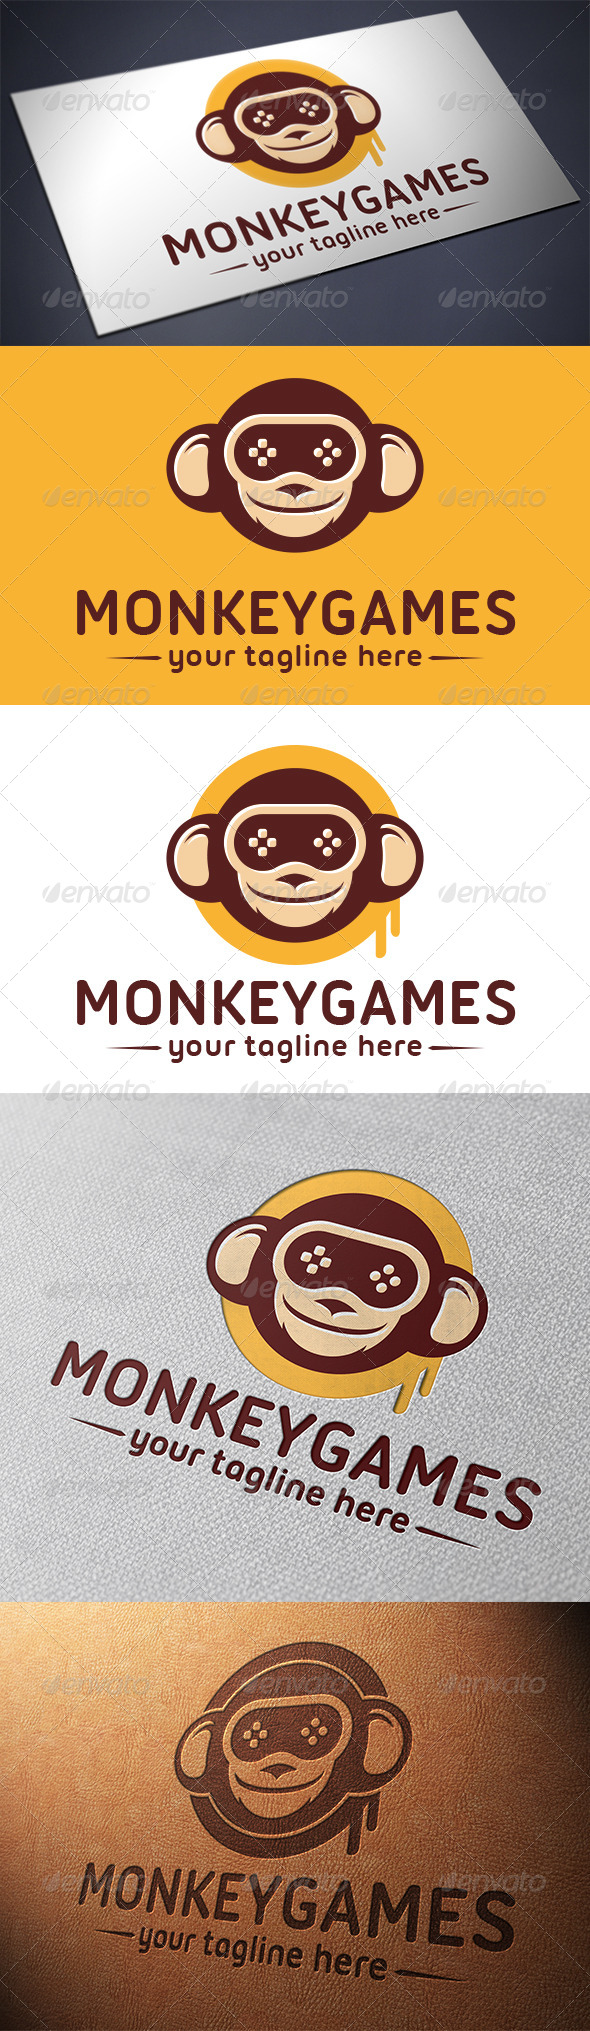 GraphicRiver Monkey Game Logo Template 5664987